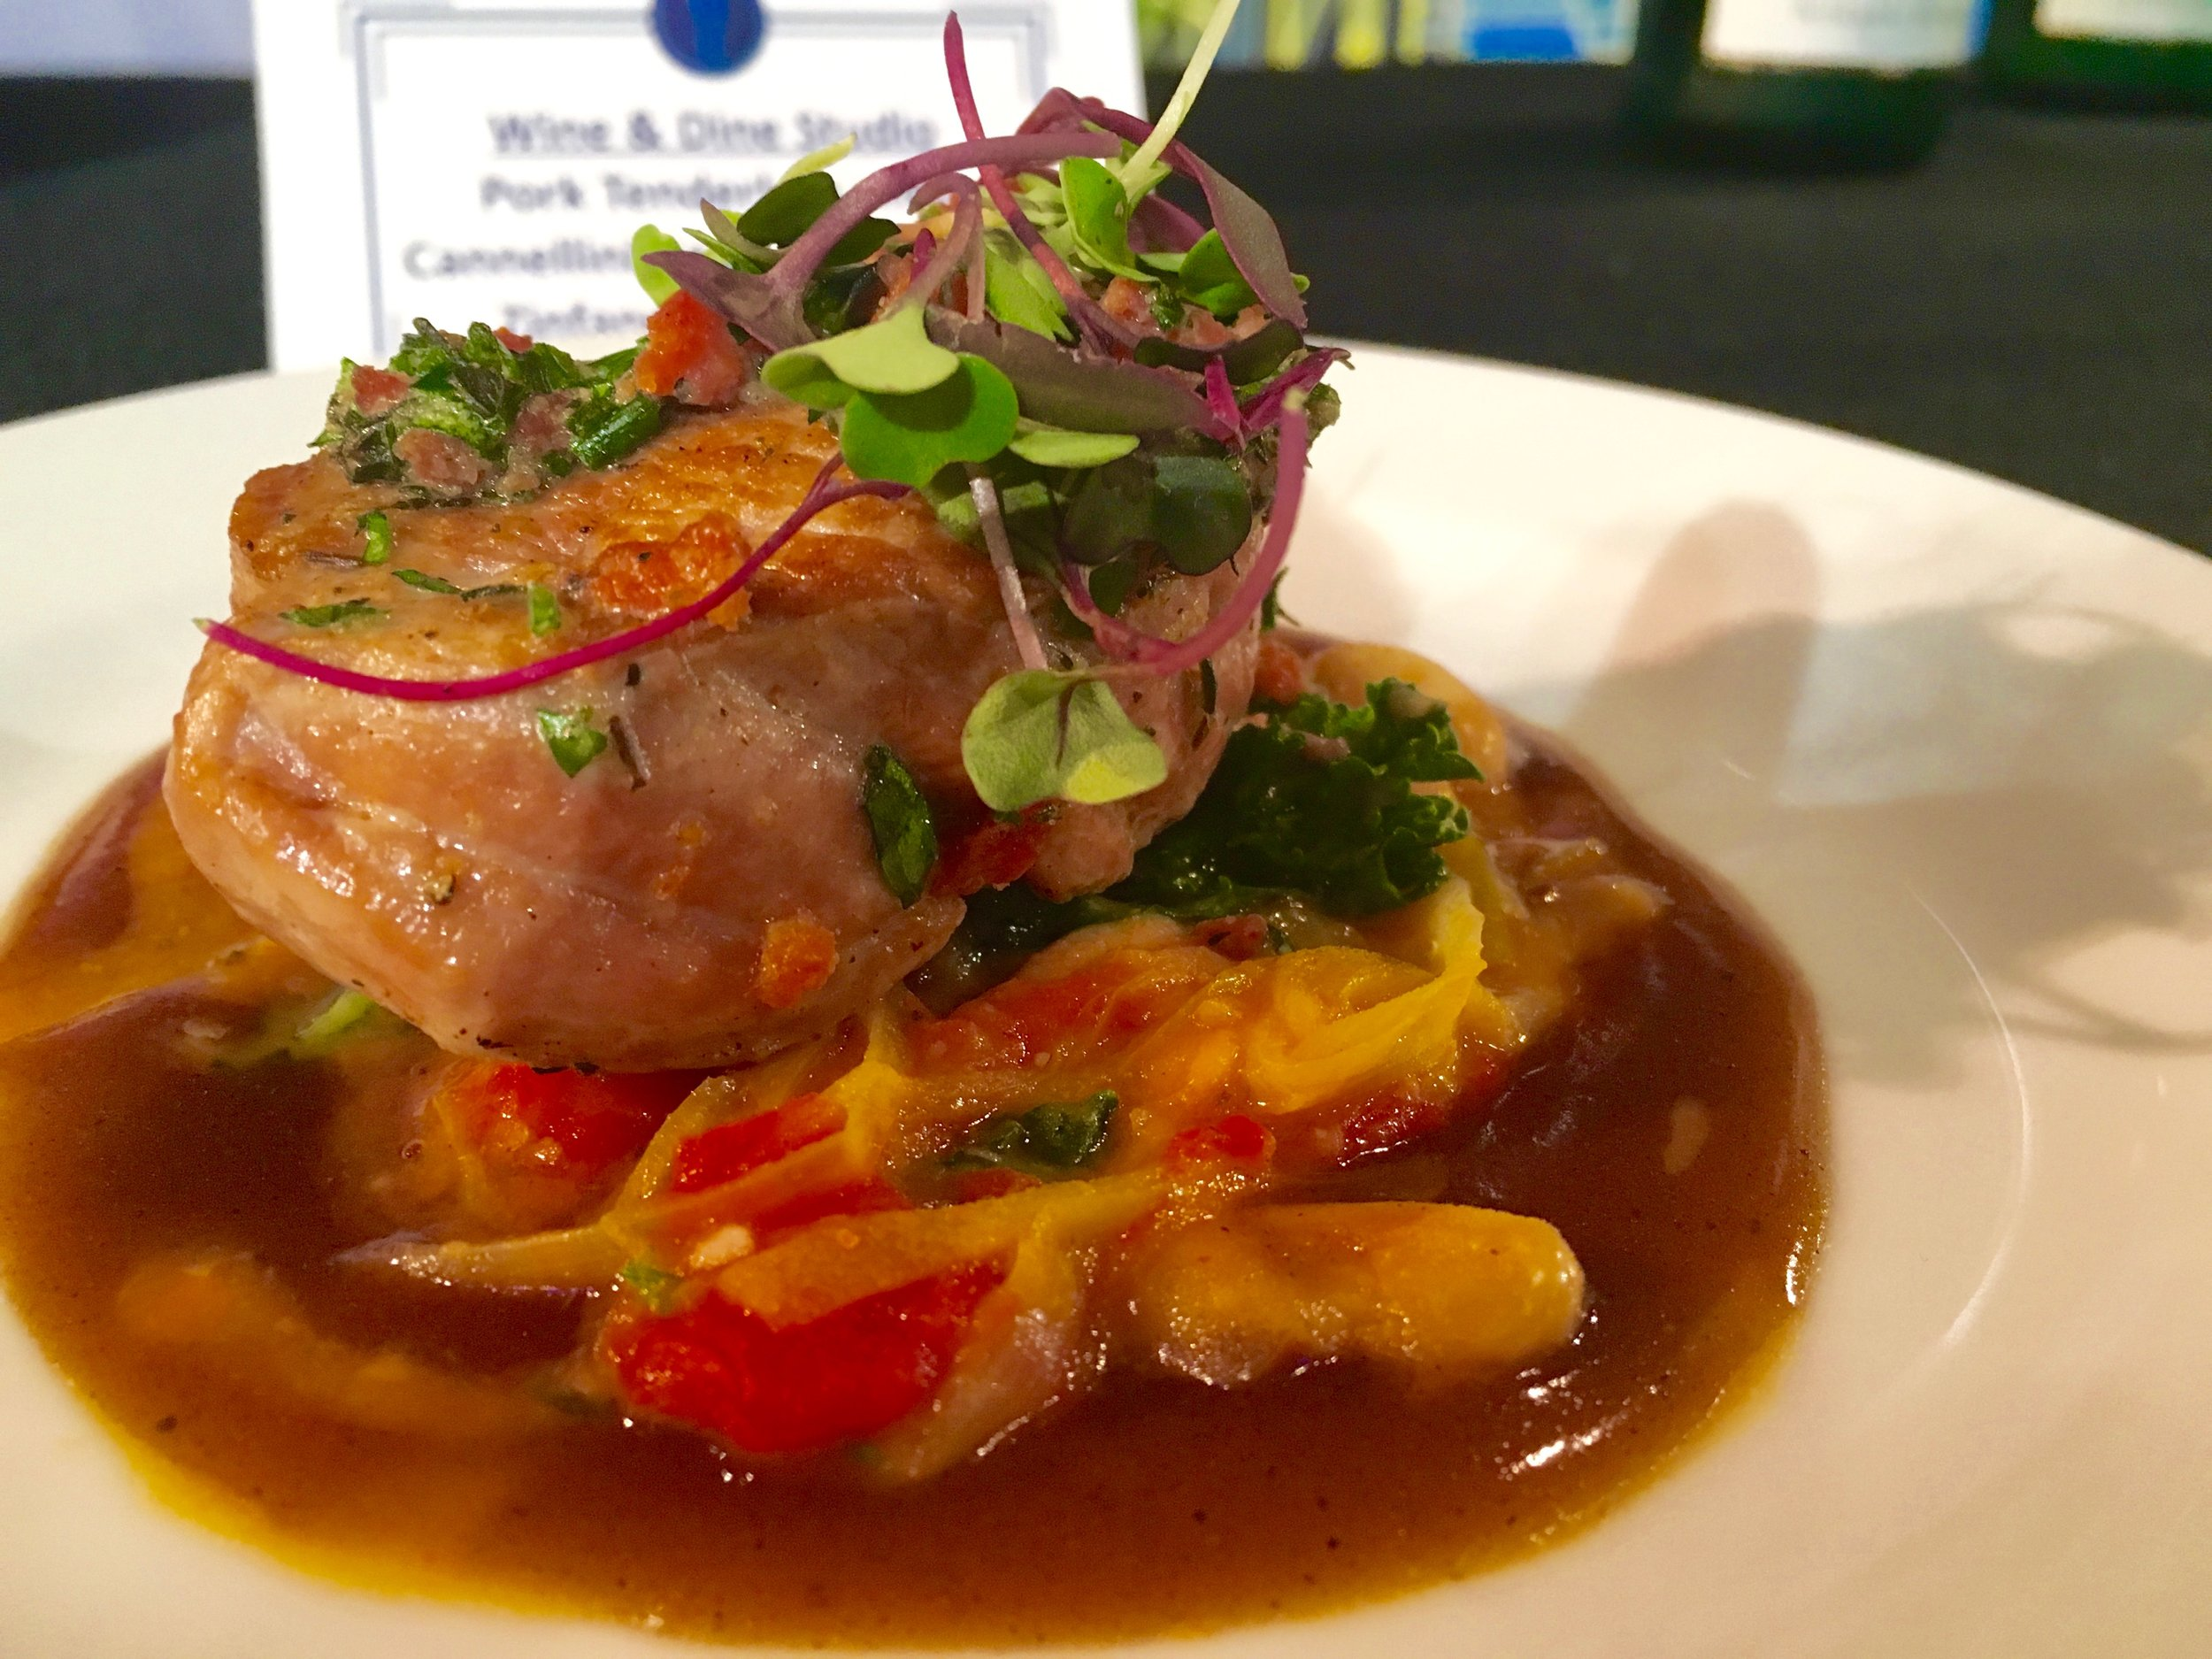 Pork tenderloinBest New Dishes at Epcot Food and Wine Festival 2016